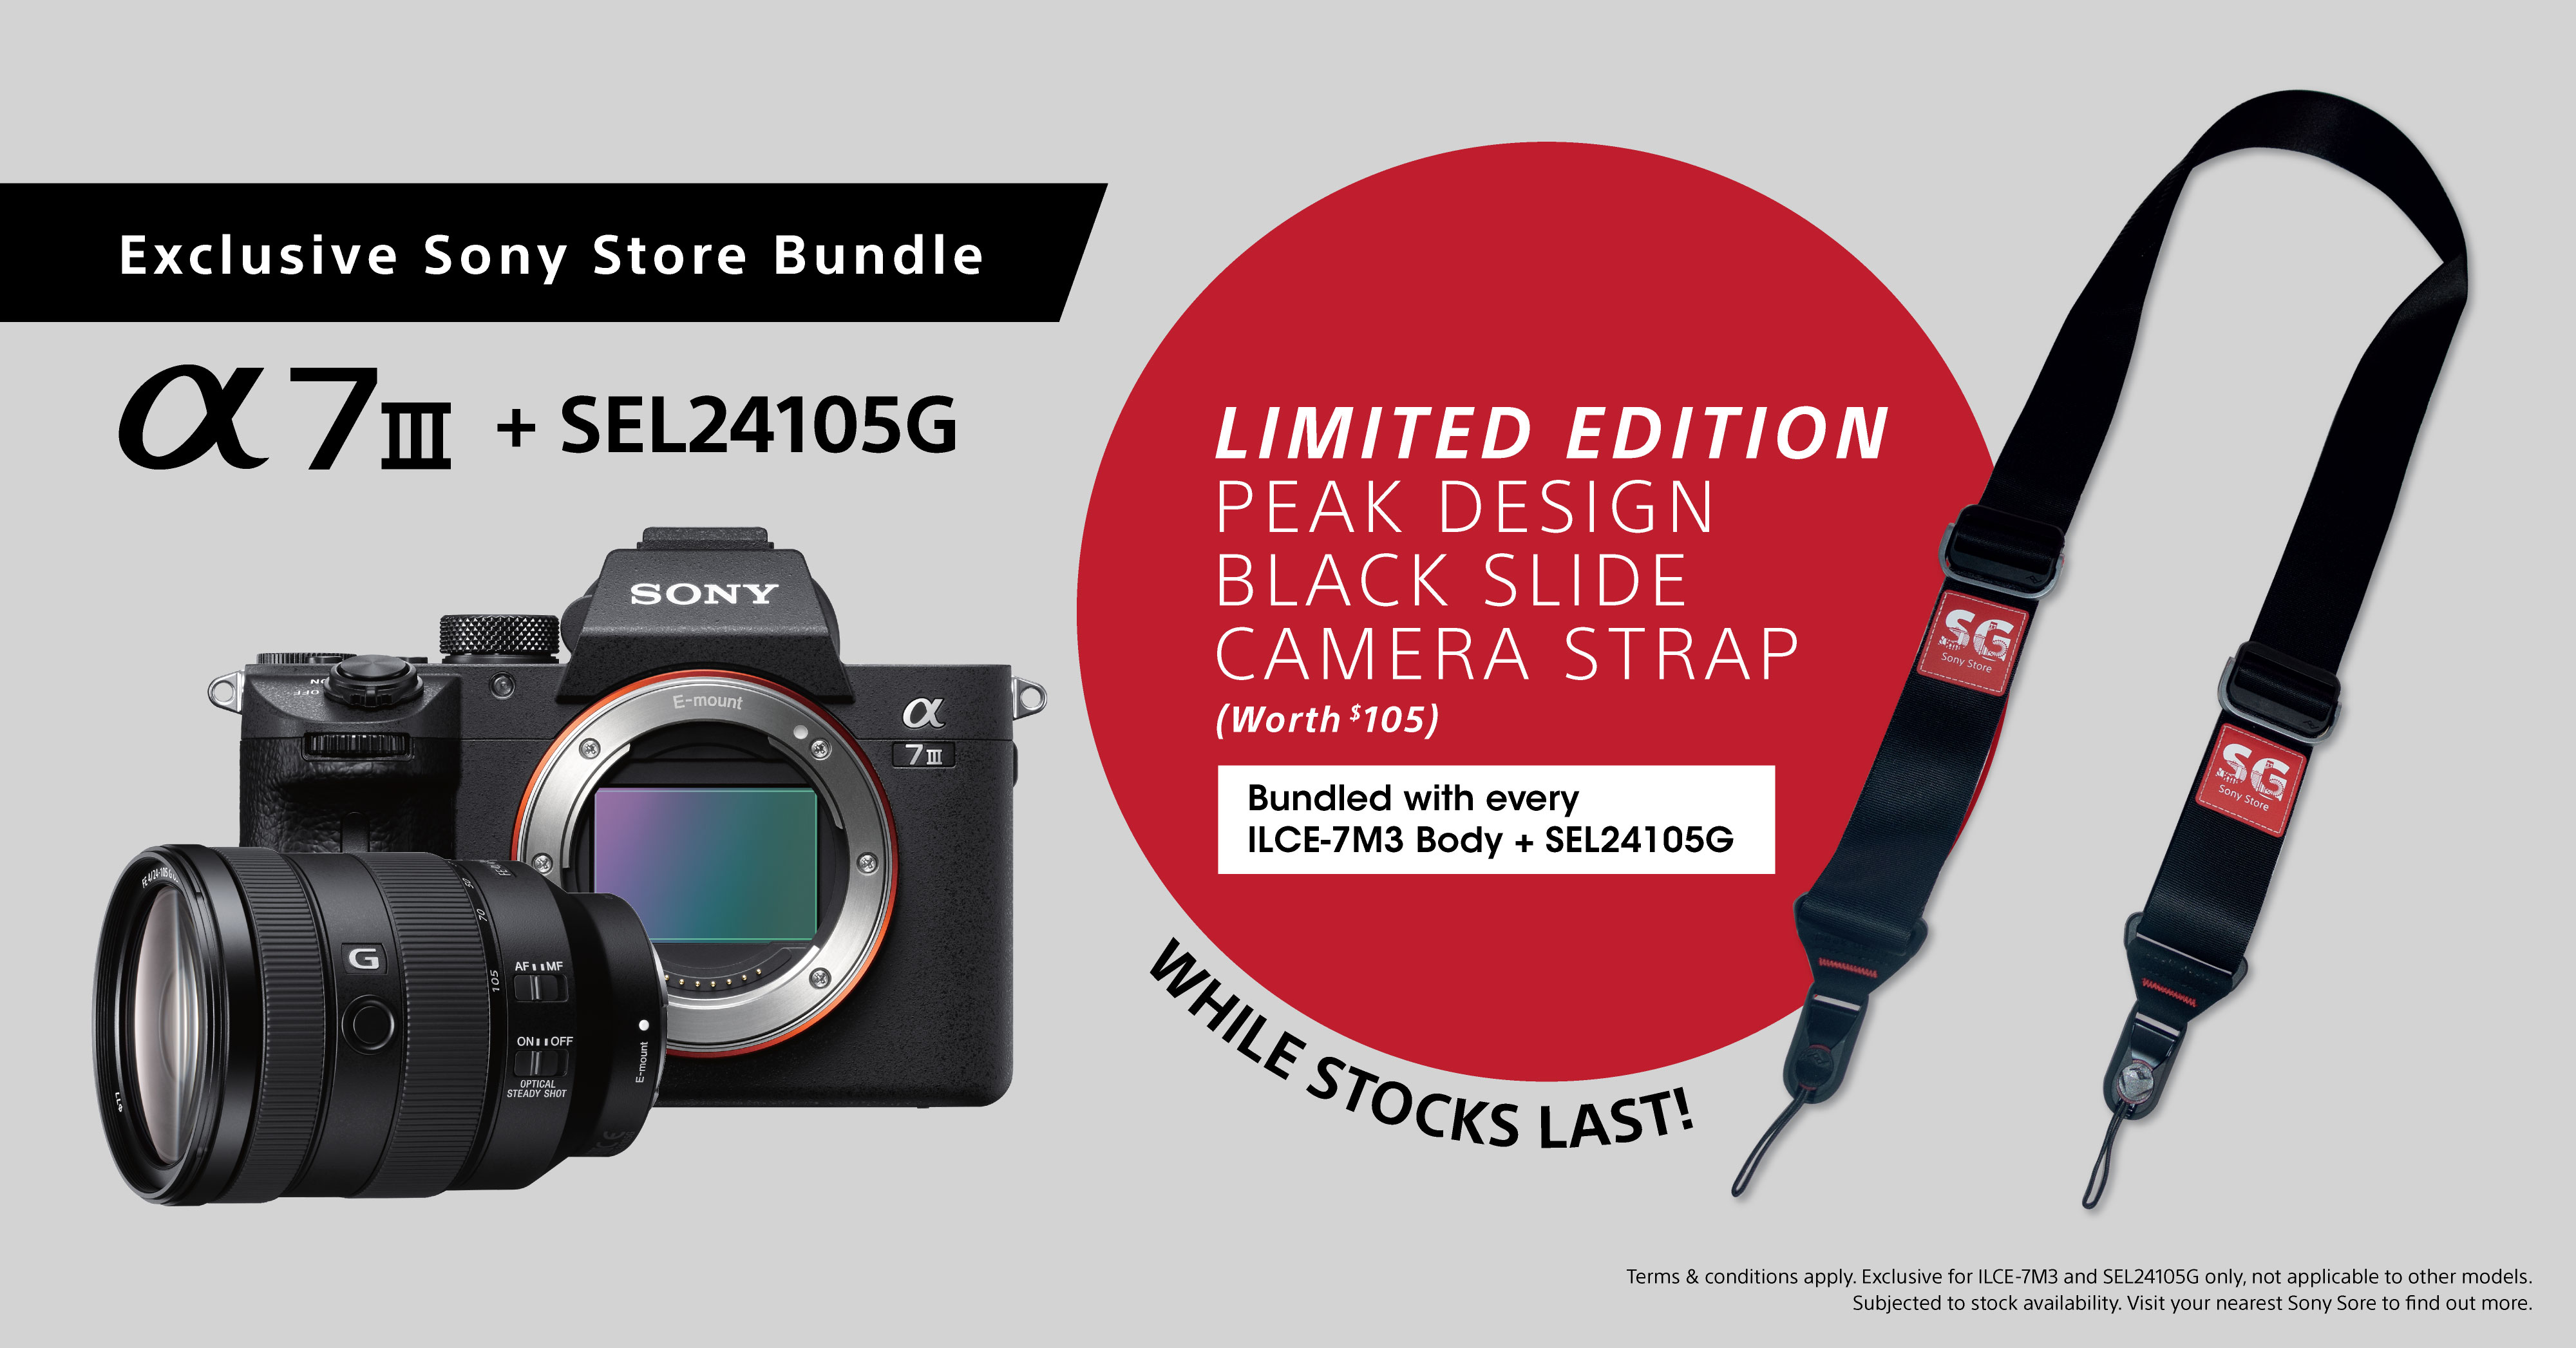 Exclusive Sony Store Bundle. Purchase Alpha 7 III Body and SEL24105G and get a Limited Edition Peak Design Black Slide Camera Strap! Visit any Sony Store to grab yours now!